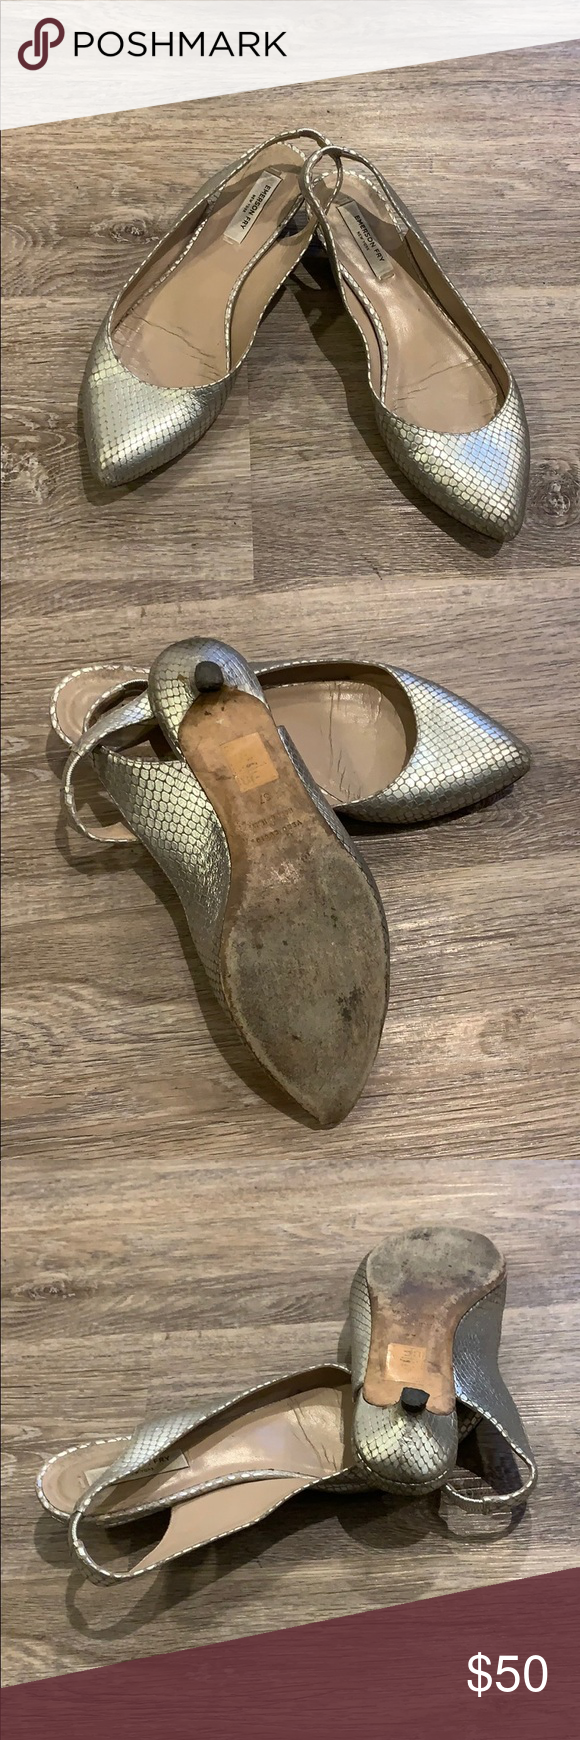 Emerson Fry Low Heel SlingBacks 100% Genuine Leather. Metallic silver animal (snake skin) low heel/flats. Gently Used (reasonably priced).